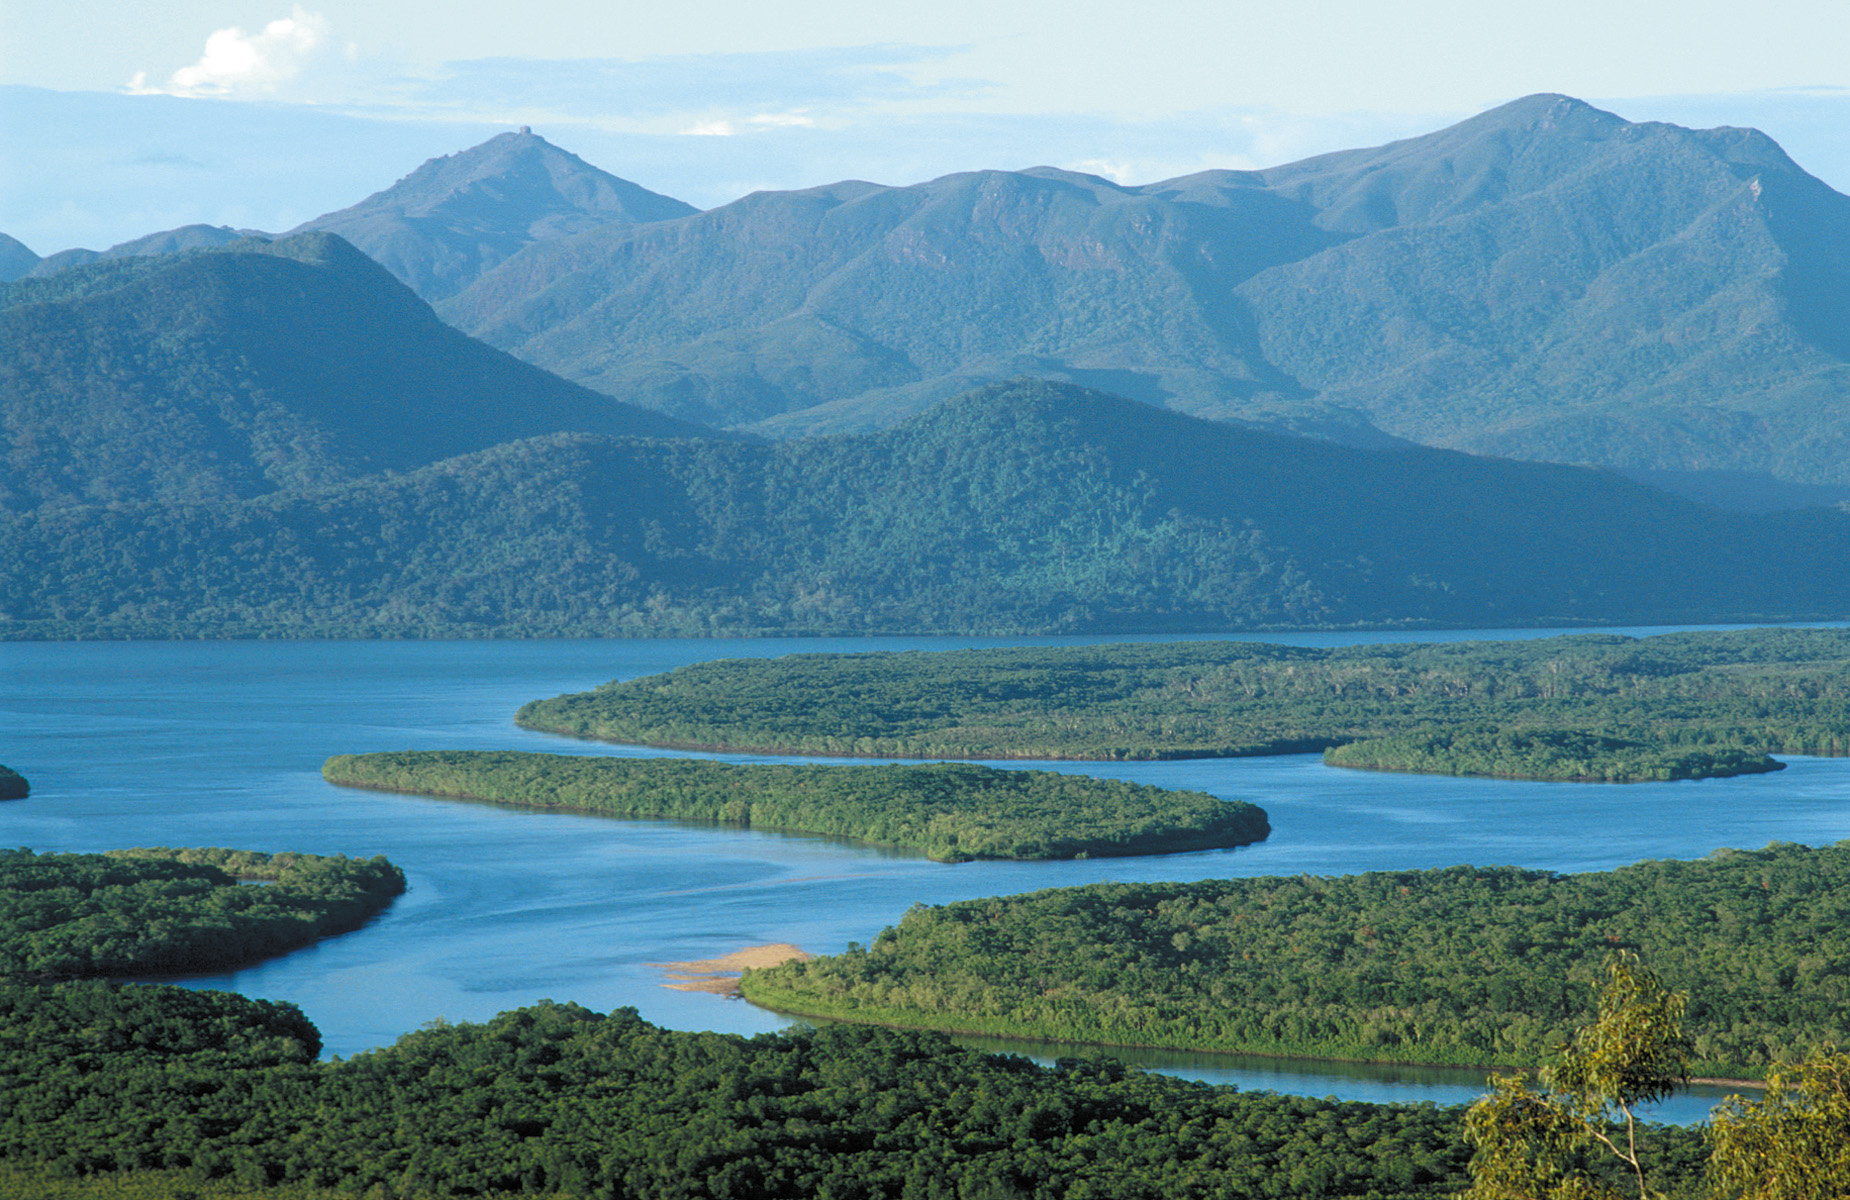 View across forest and water to Hinchinbrook Island